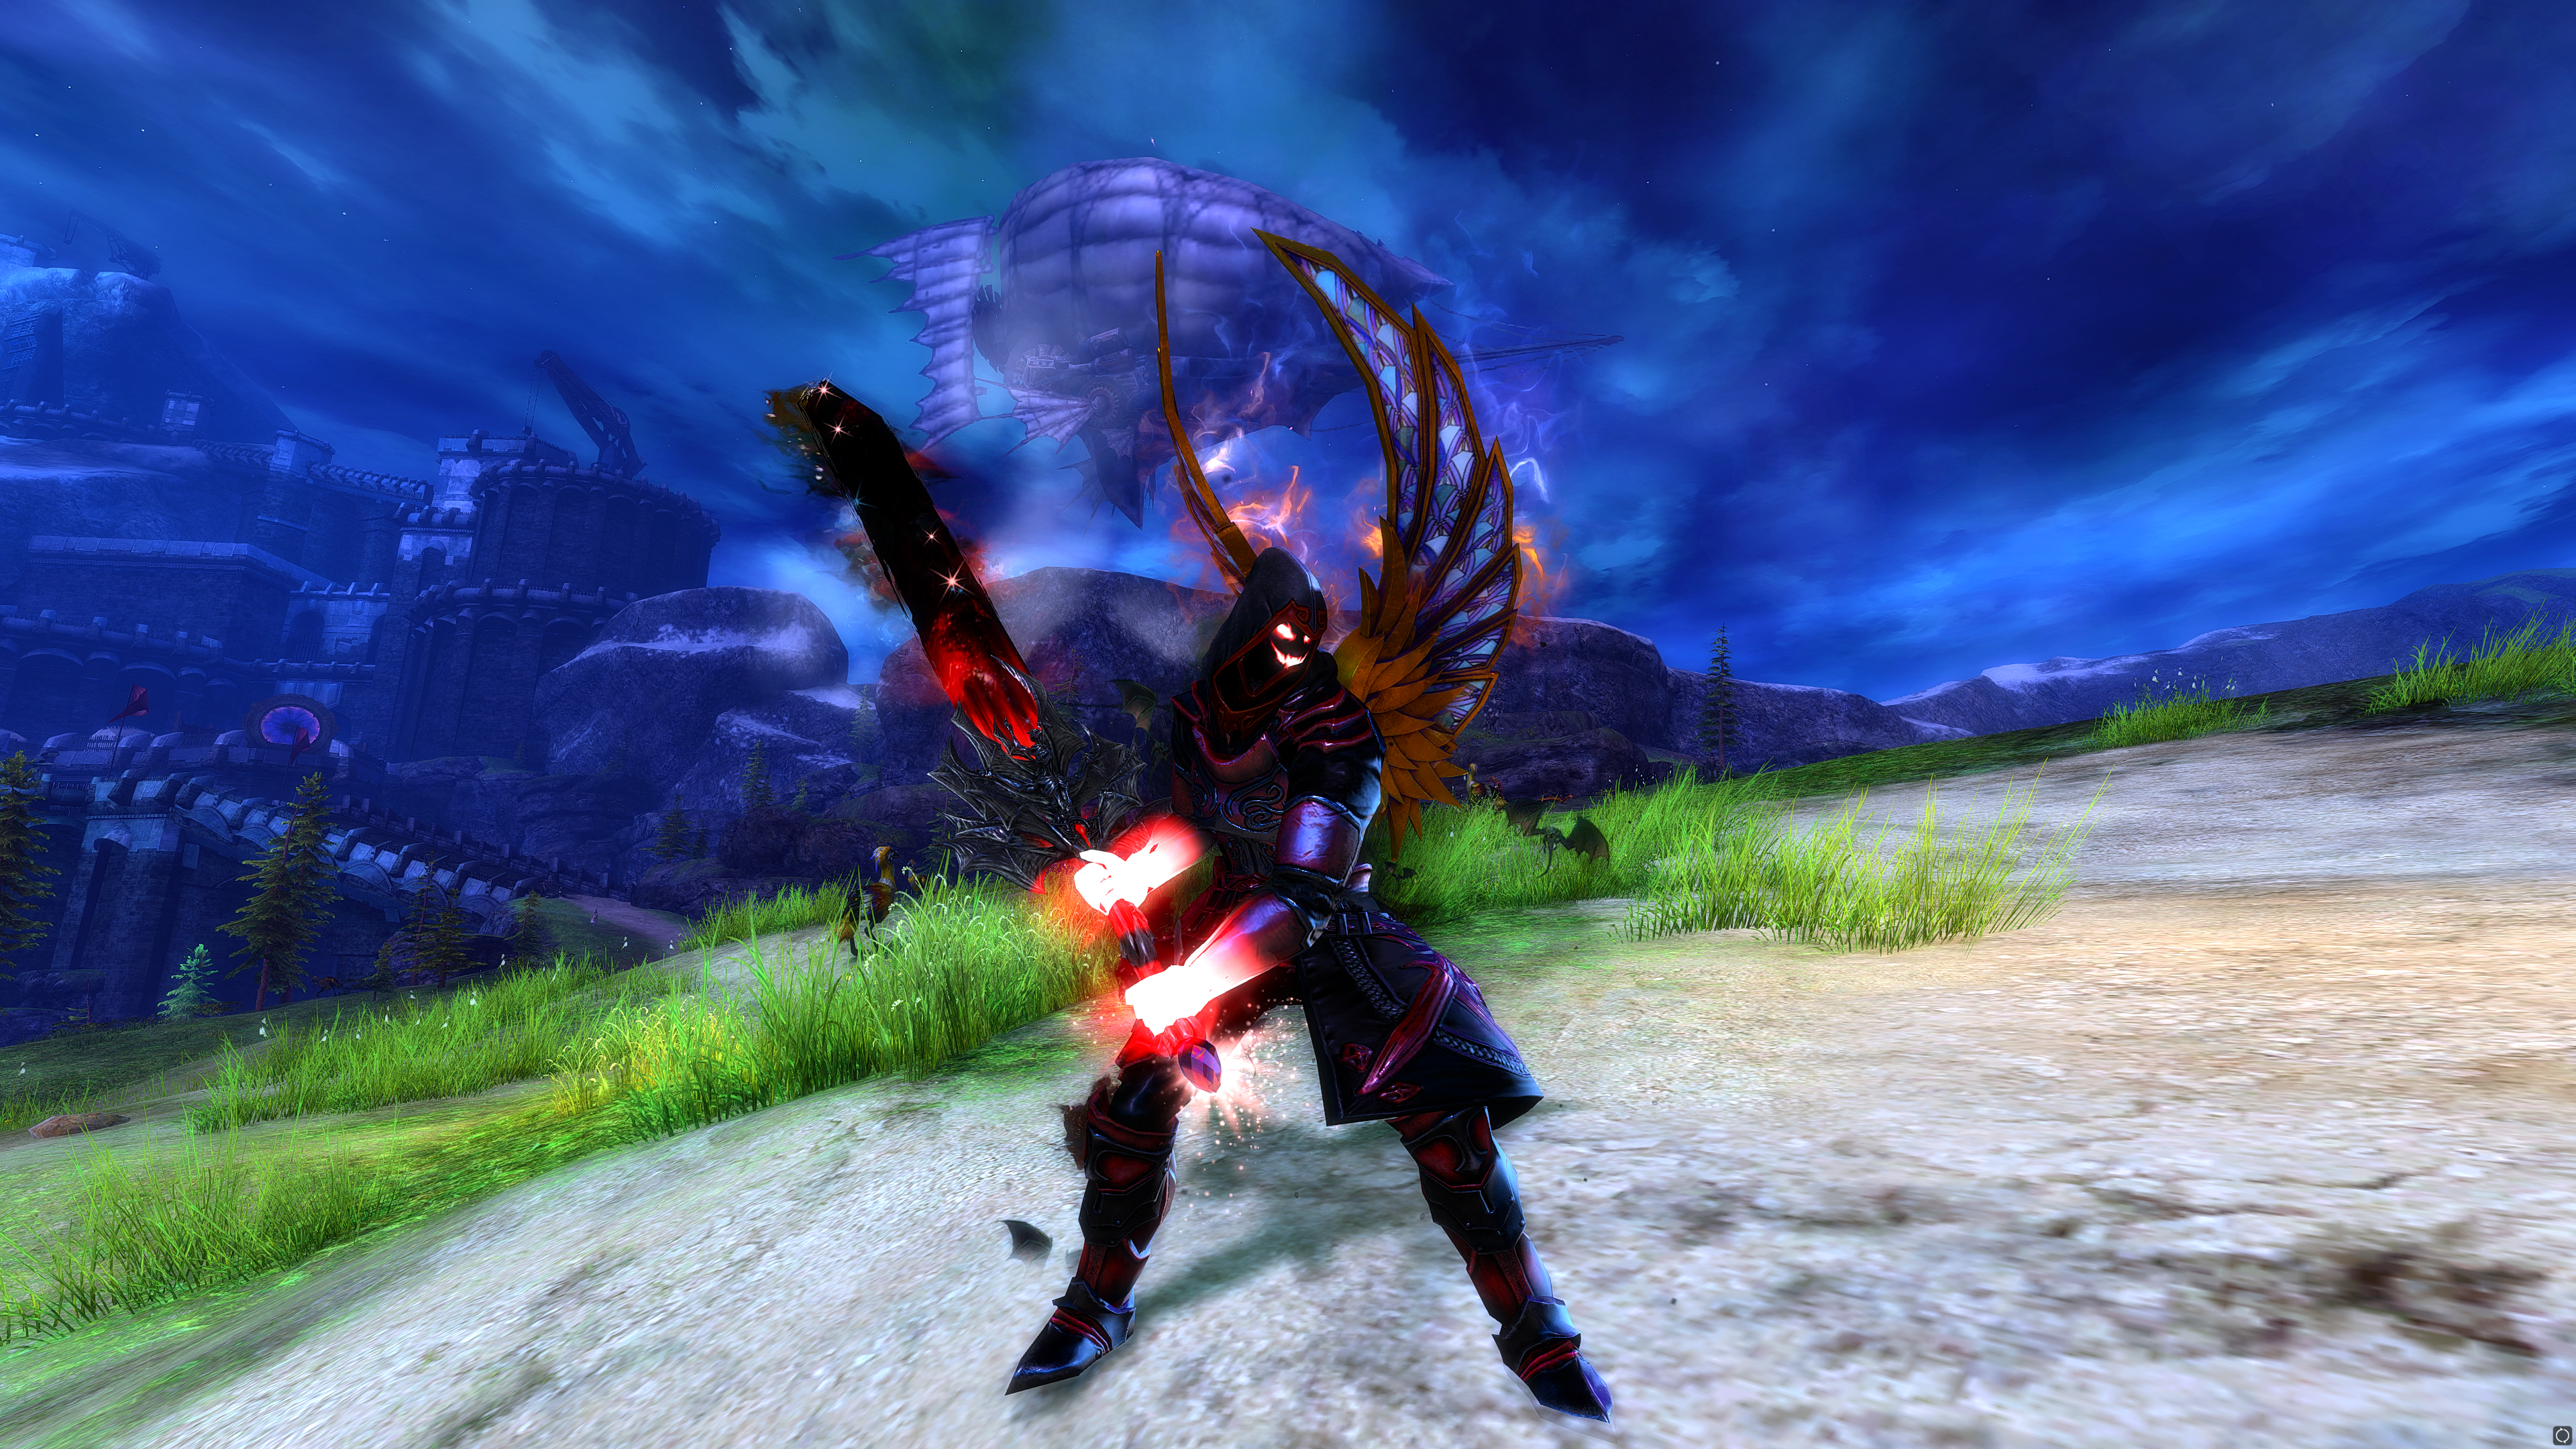 Guild Wars 2 Warrior With New Wings - Member's Gallery